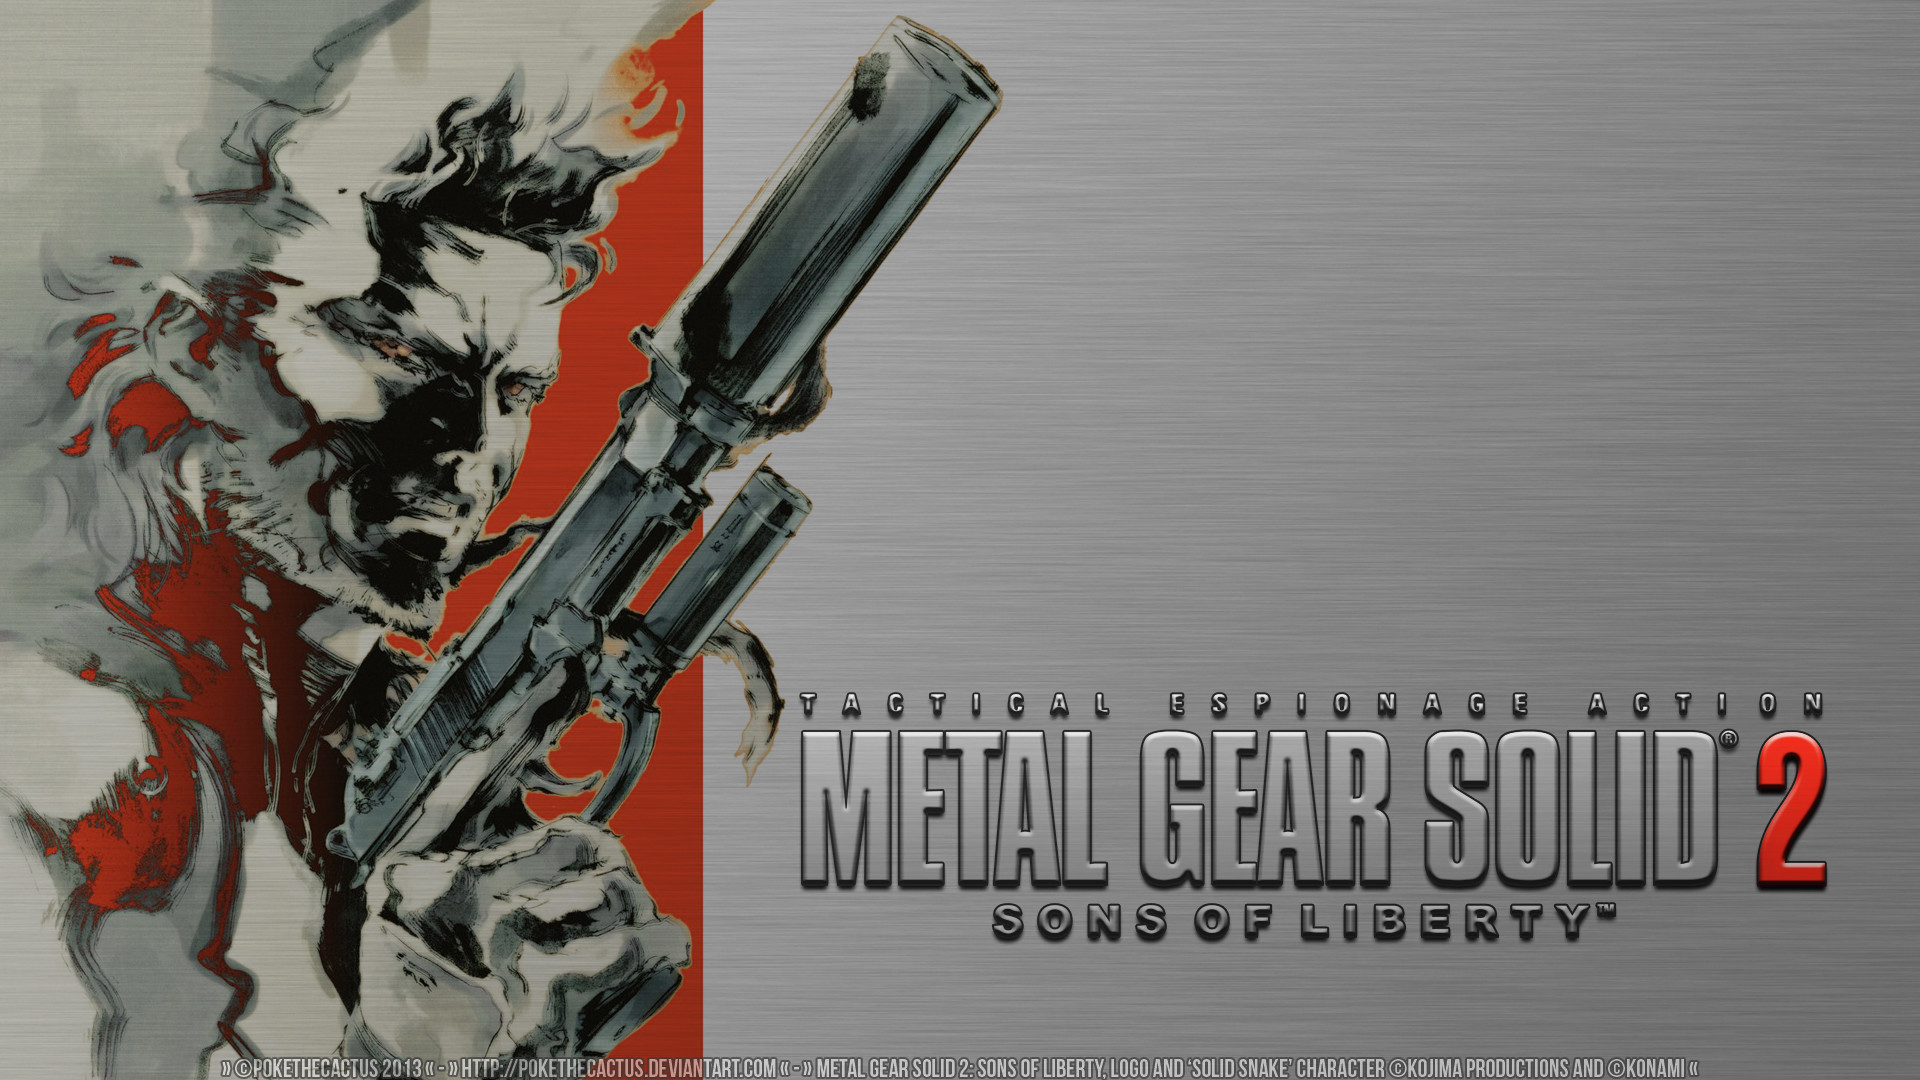 … Classic – Metal Gear Solid 2 HD Wallpaper by PokeTheCactus